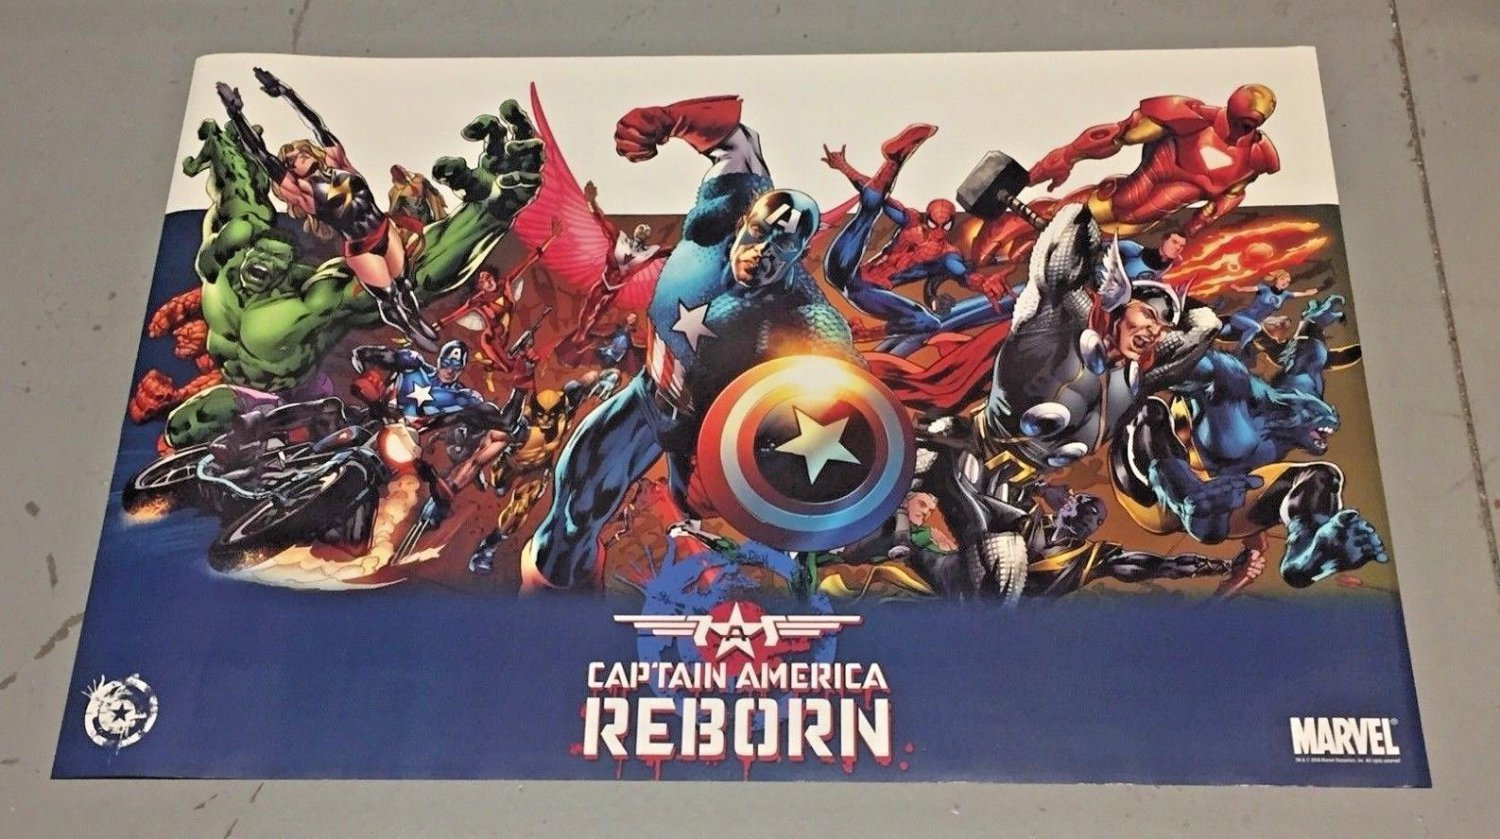 CAPTAIN AMERICA REBORN COLLAGE POSTER 24 x 36 inches BRYAN HITCH